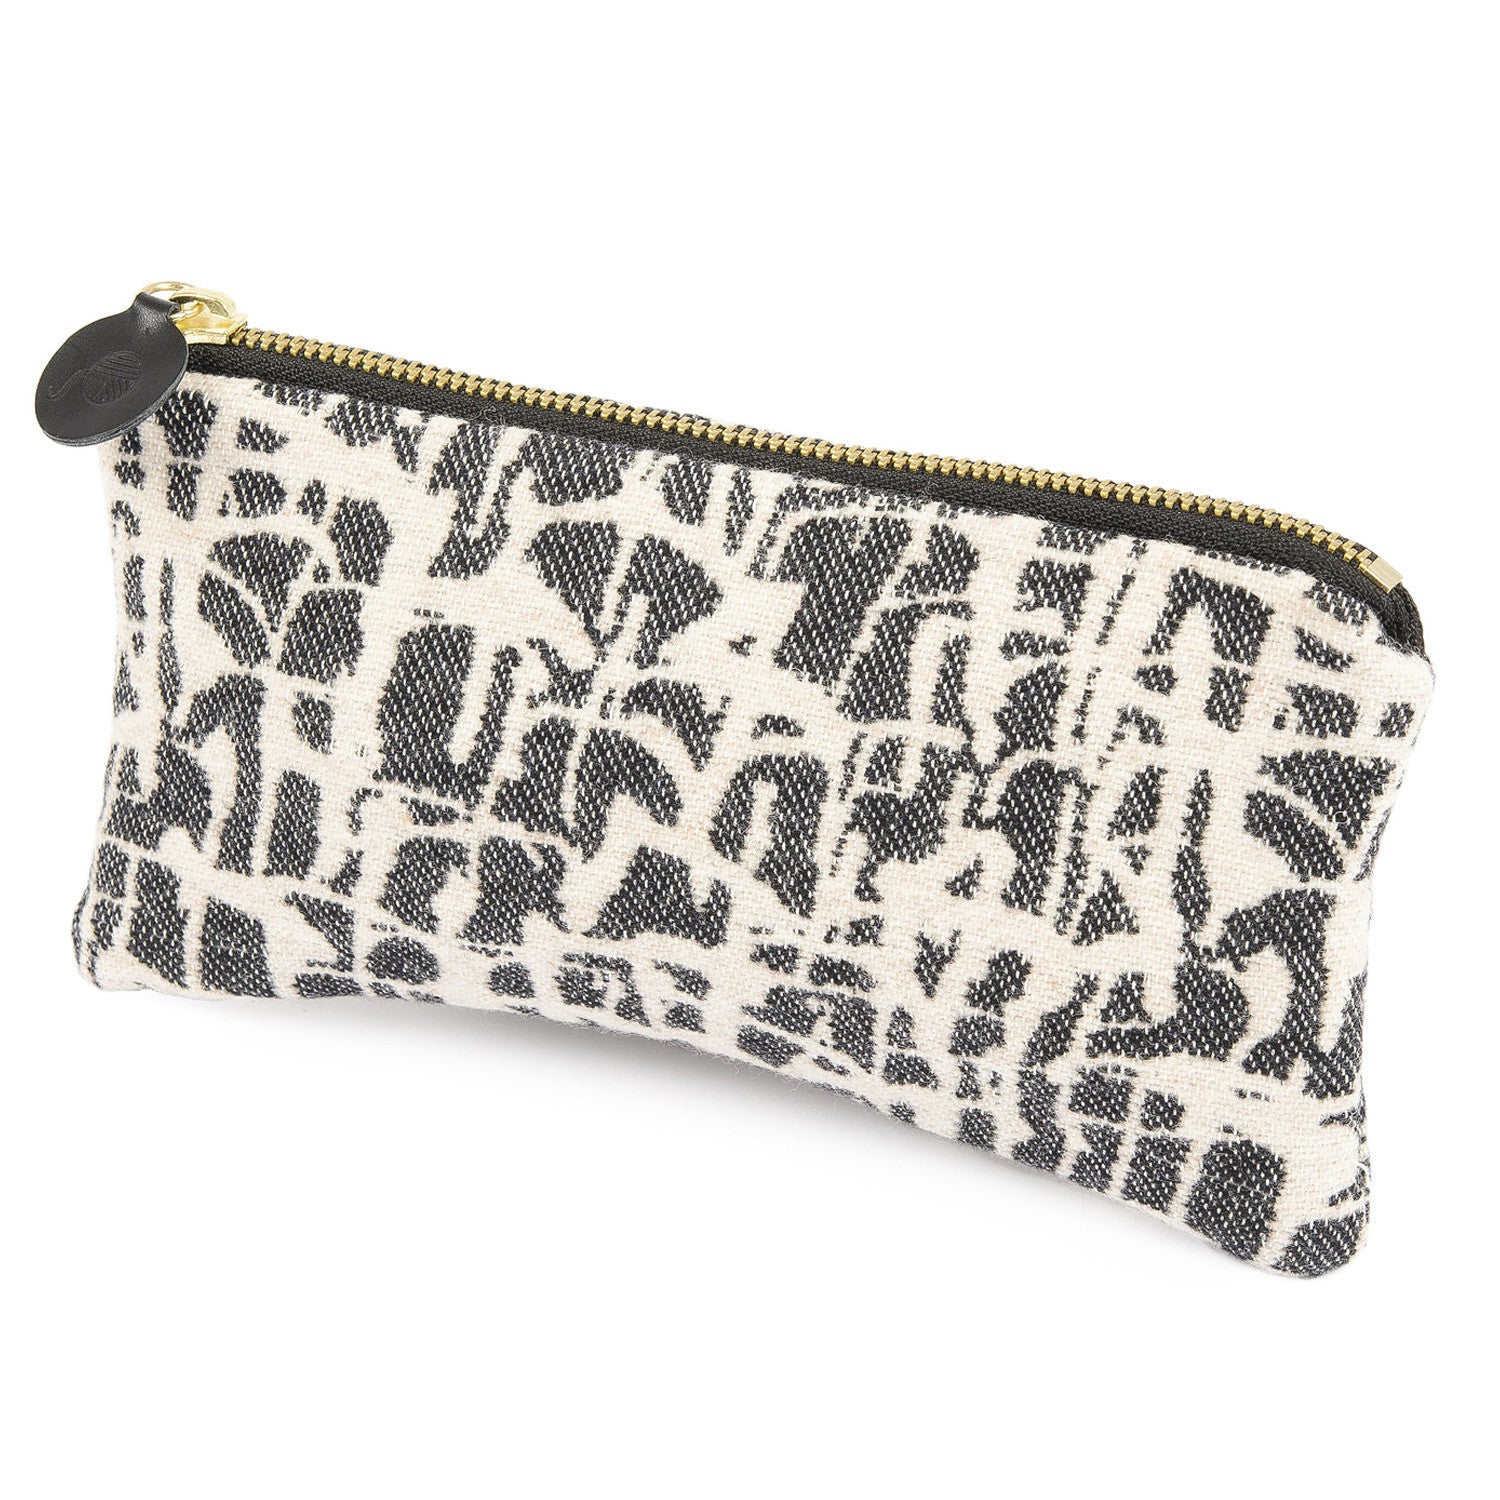 Merino Lambswool Zip Purse - Boulder Graphite & Ecru - Tori Murphy Ltd